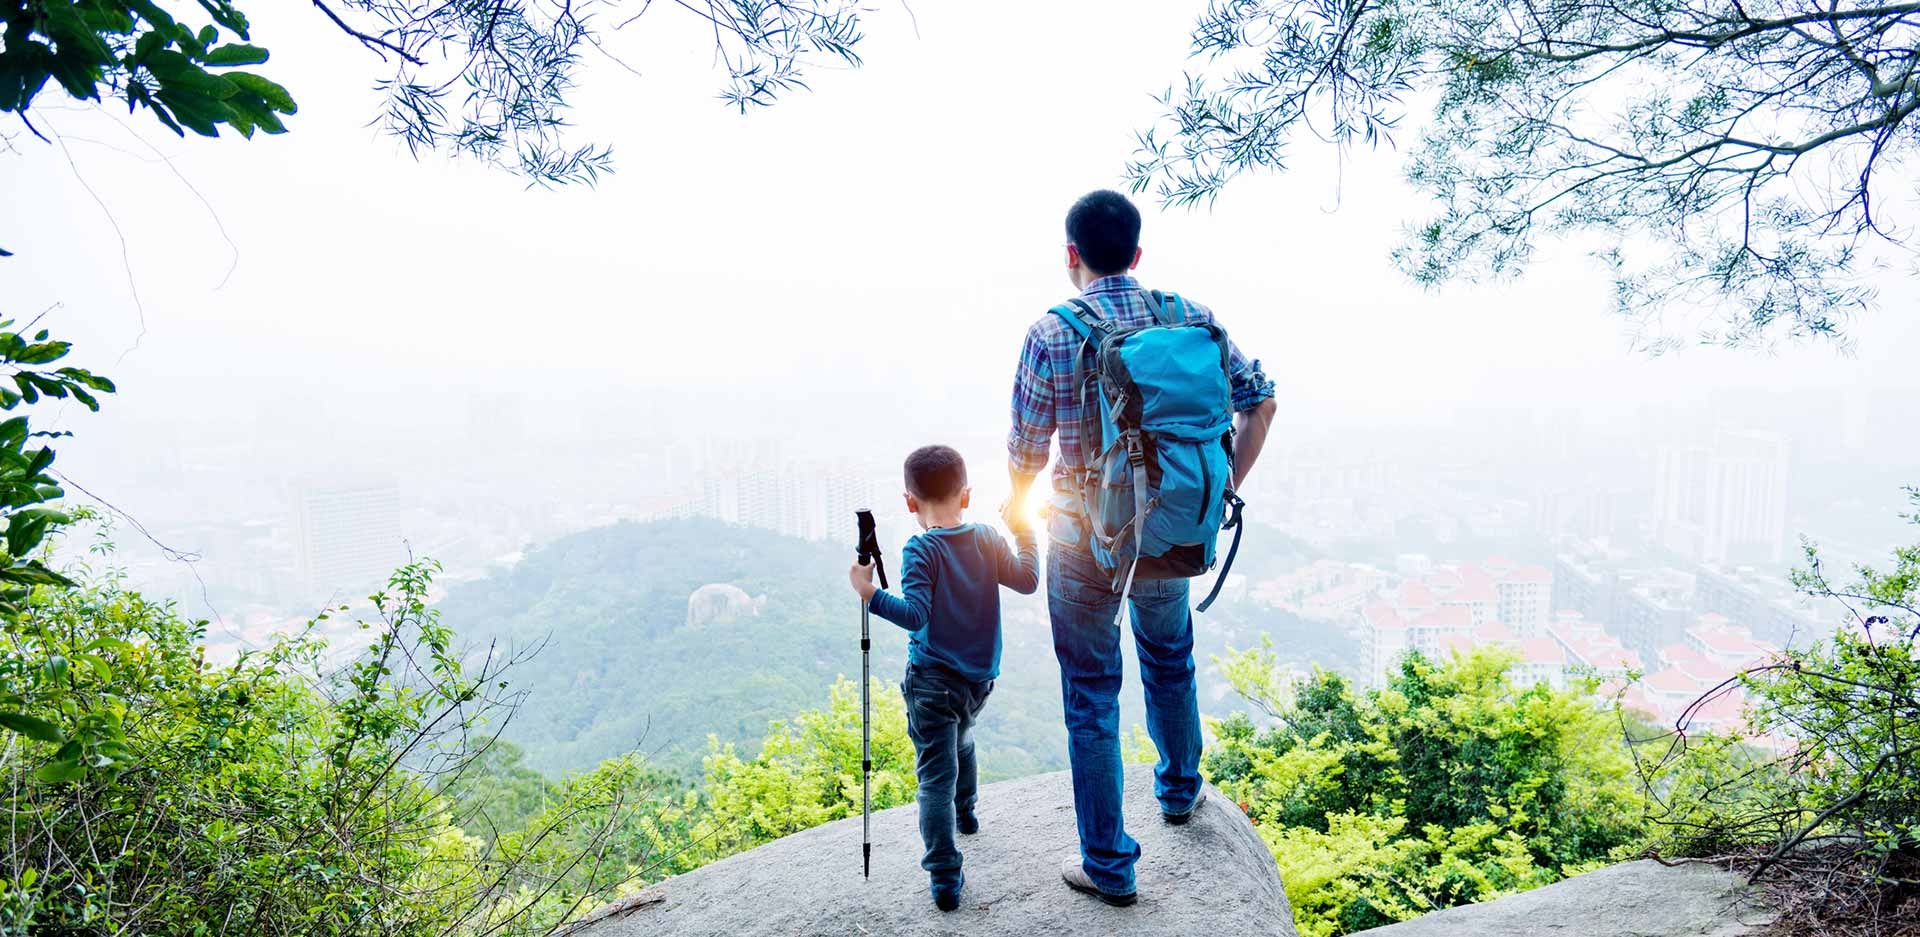 man and boy hiking